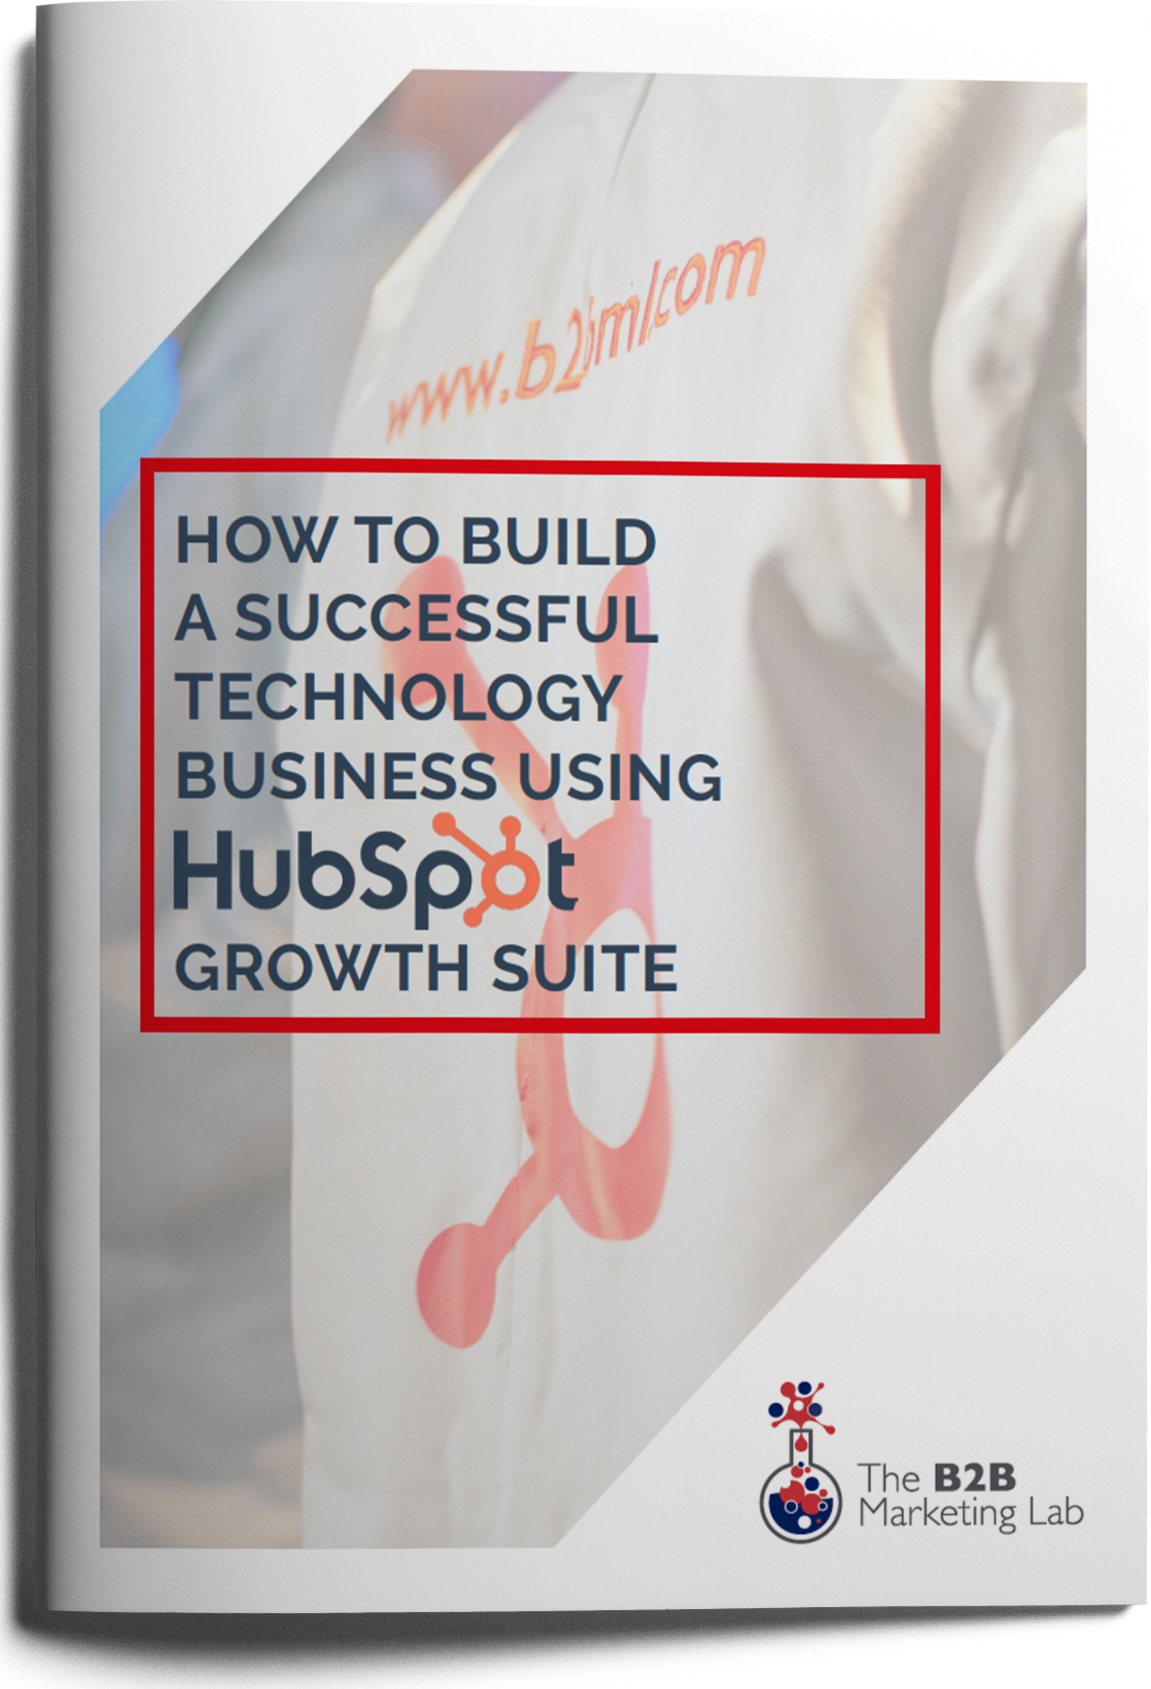 Grow a technology business using HubSpot